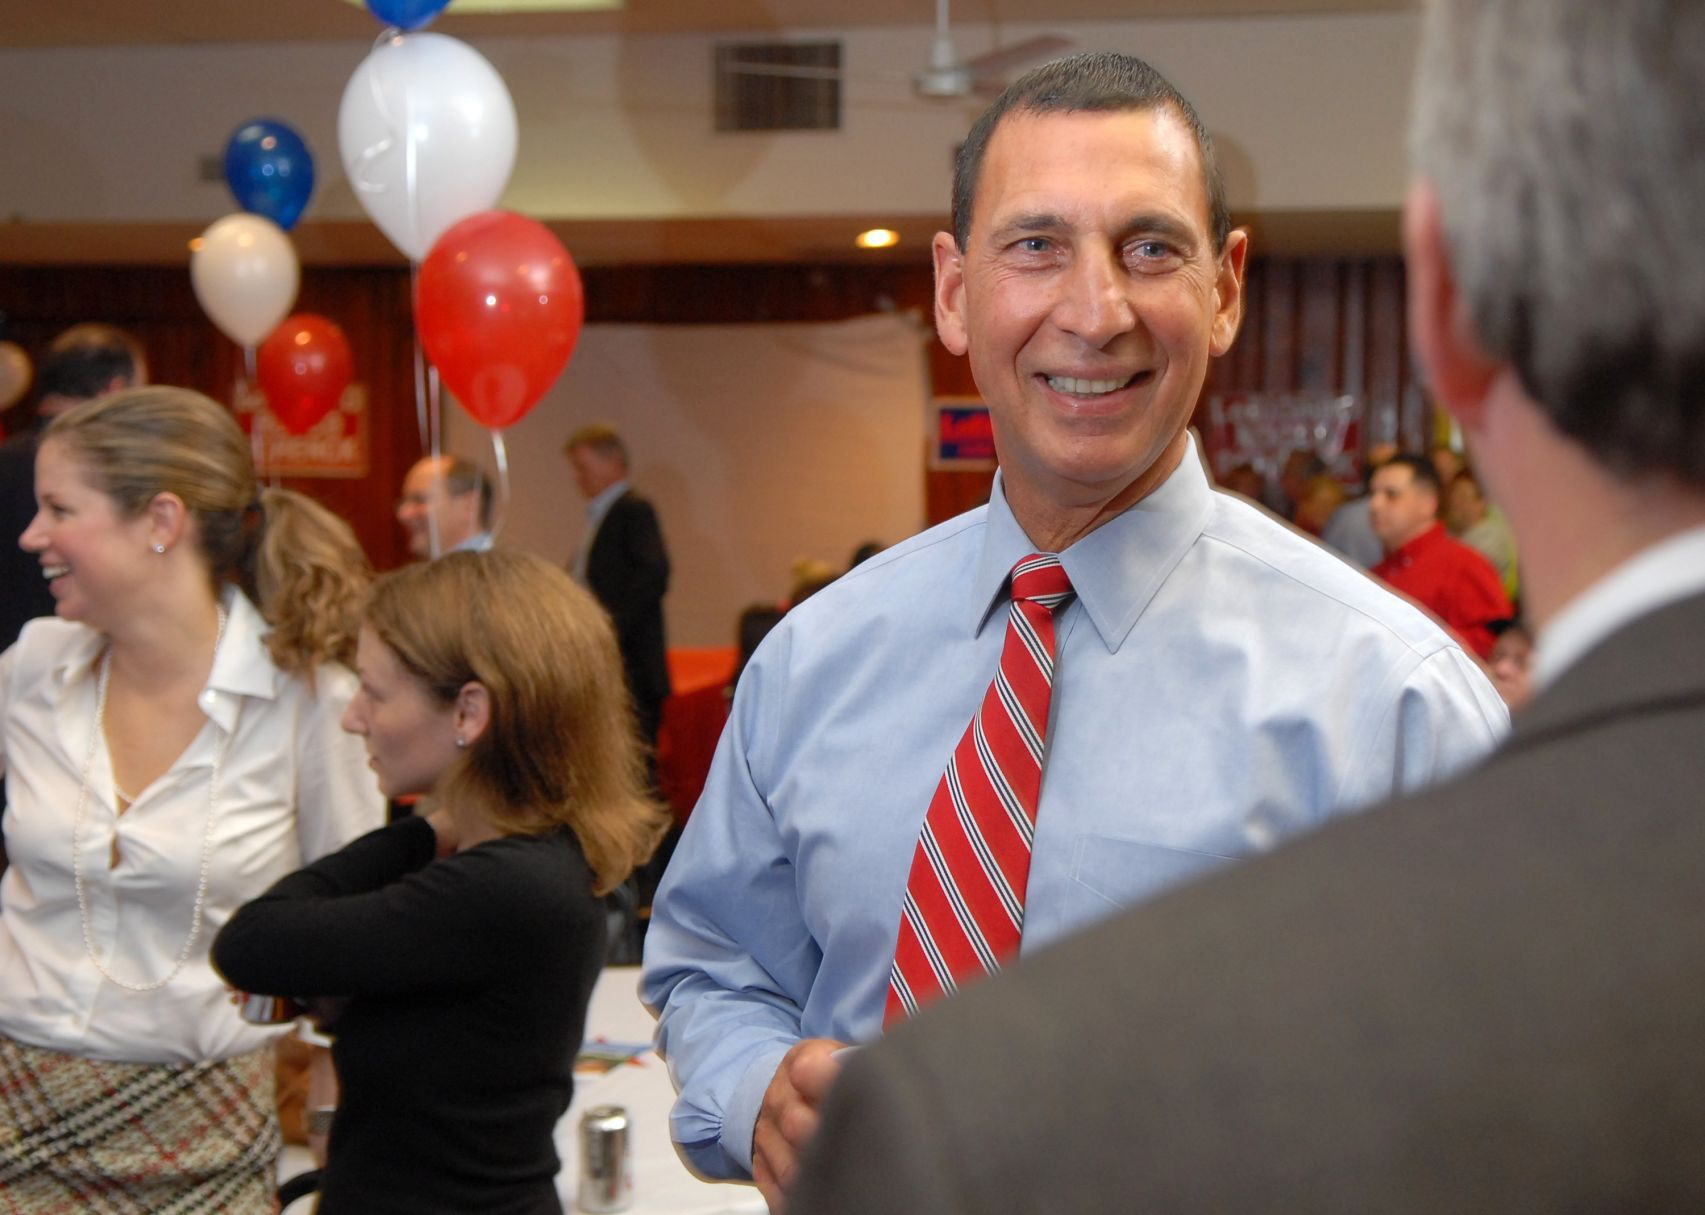 A look back at Frank LoBiondo in